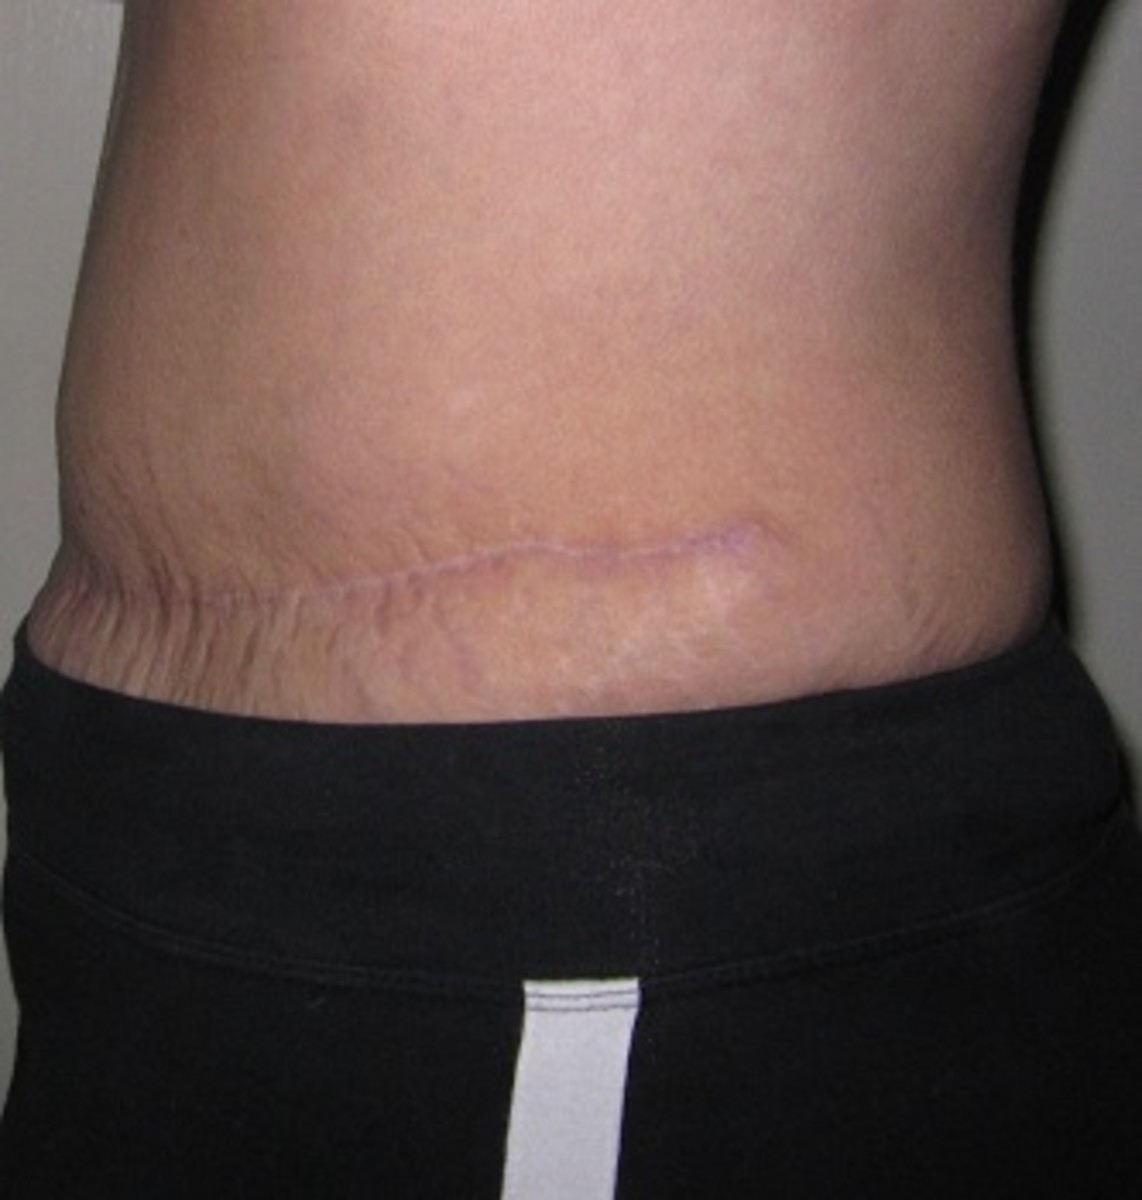 On my left hip, the skin bulges out a little over the tighter scar skin. At end of the scar line, the skin forms a little chunk of extra skin, like a sewing pattern that doesn't quite lay flat.